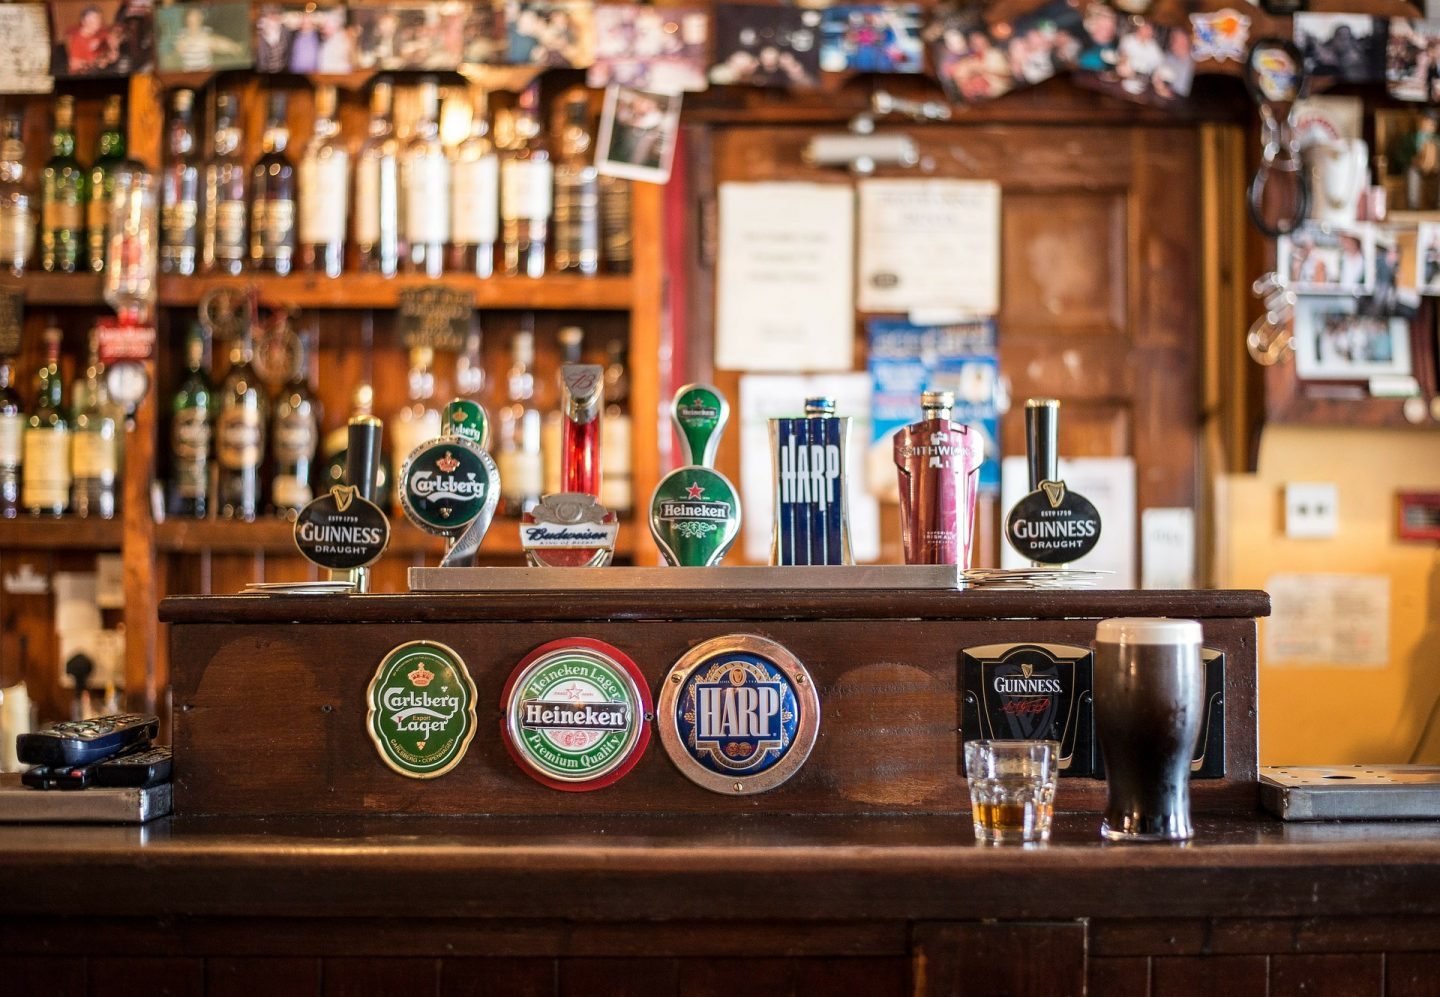 I RECOGNISE THIS BAR  – PUBS FROM FILMS AND TV SHOWS YOU CAN VISIT